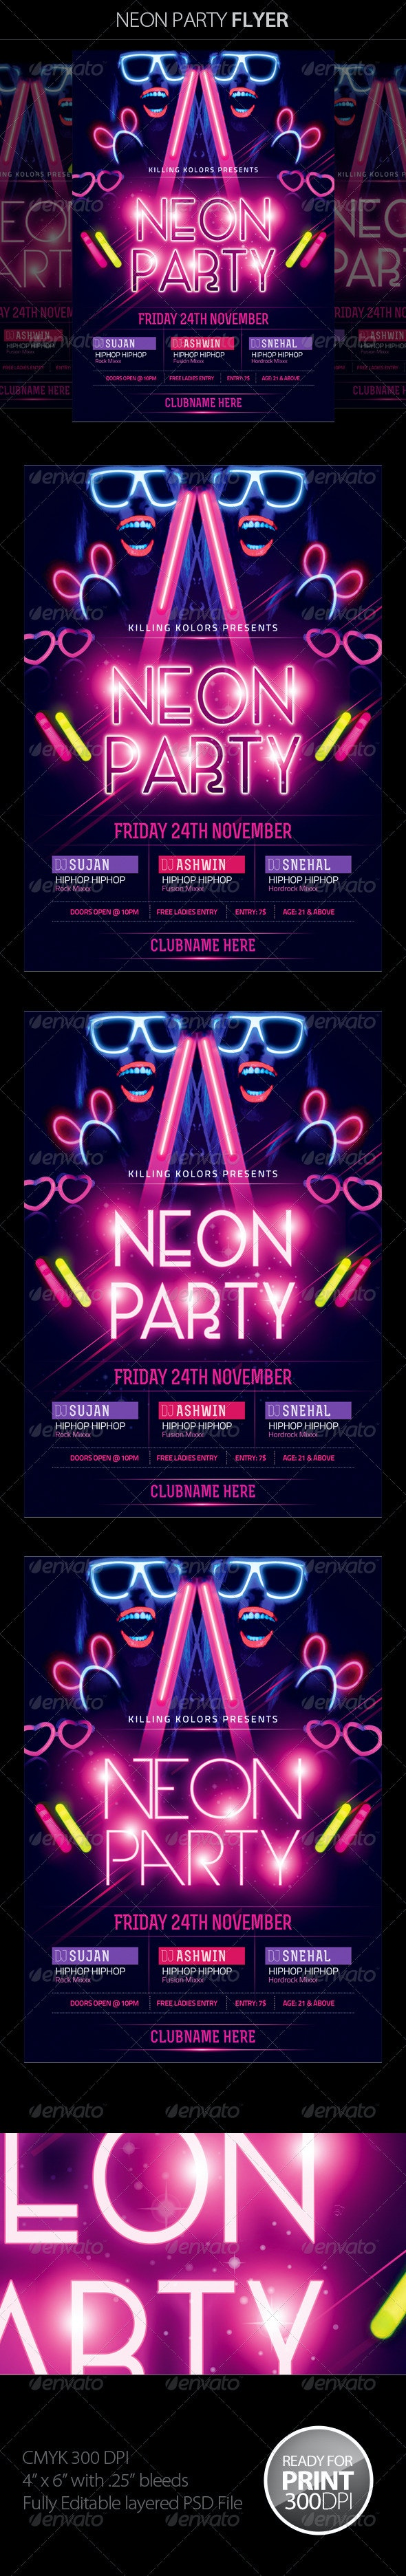 Neon / Glow Party Flyer - Clubs & Parties Events